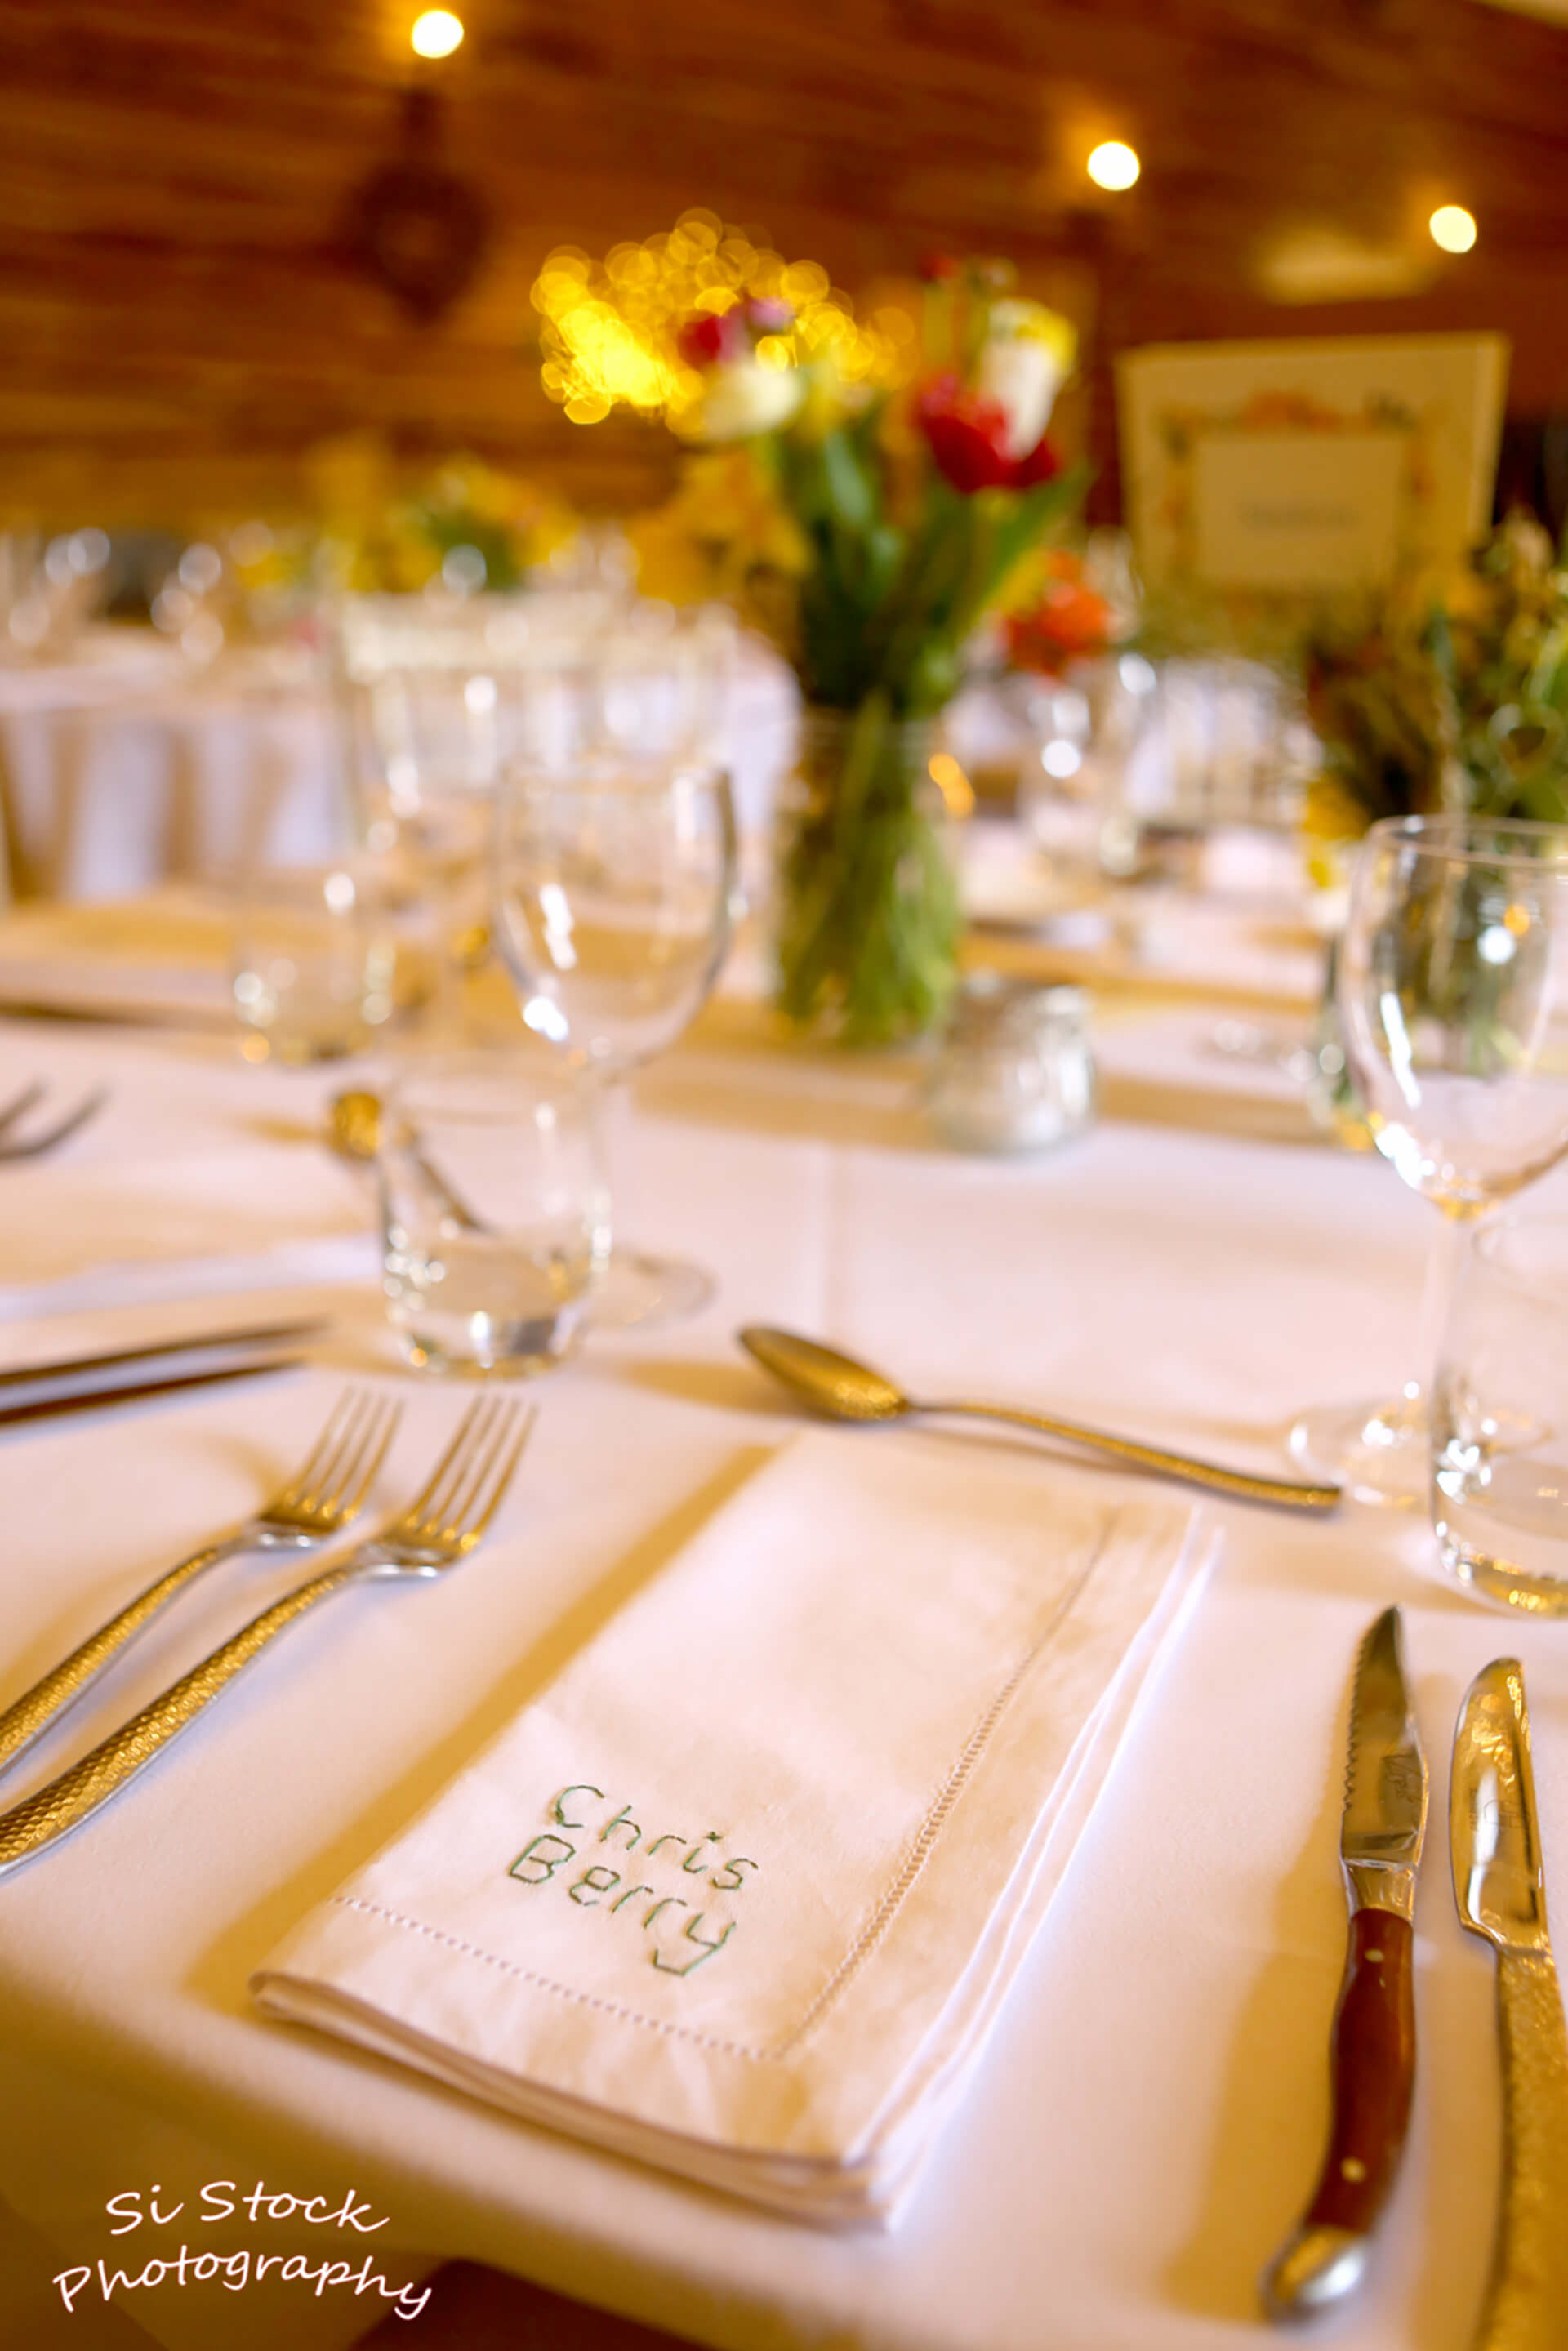 Katie and Stuarts's hand stitched place name napkins were a real labour of love! Photo by Simon Stock.